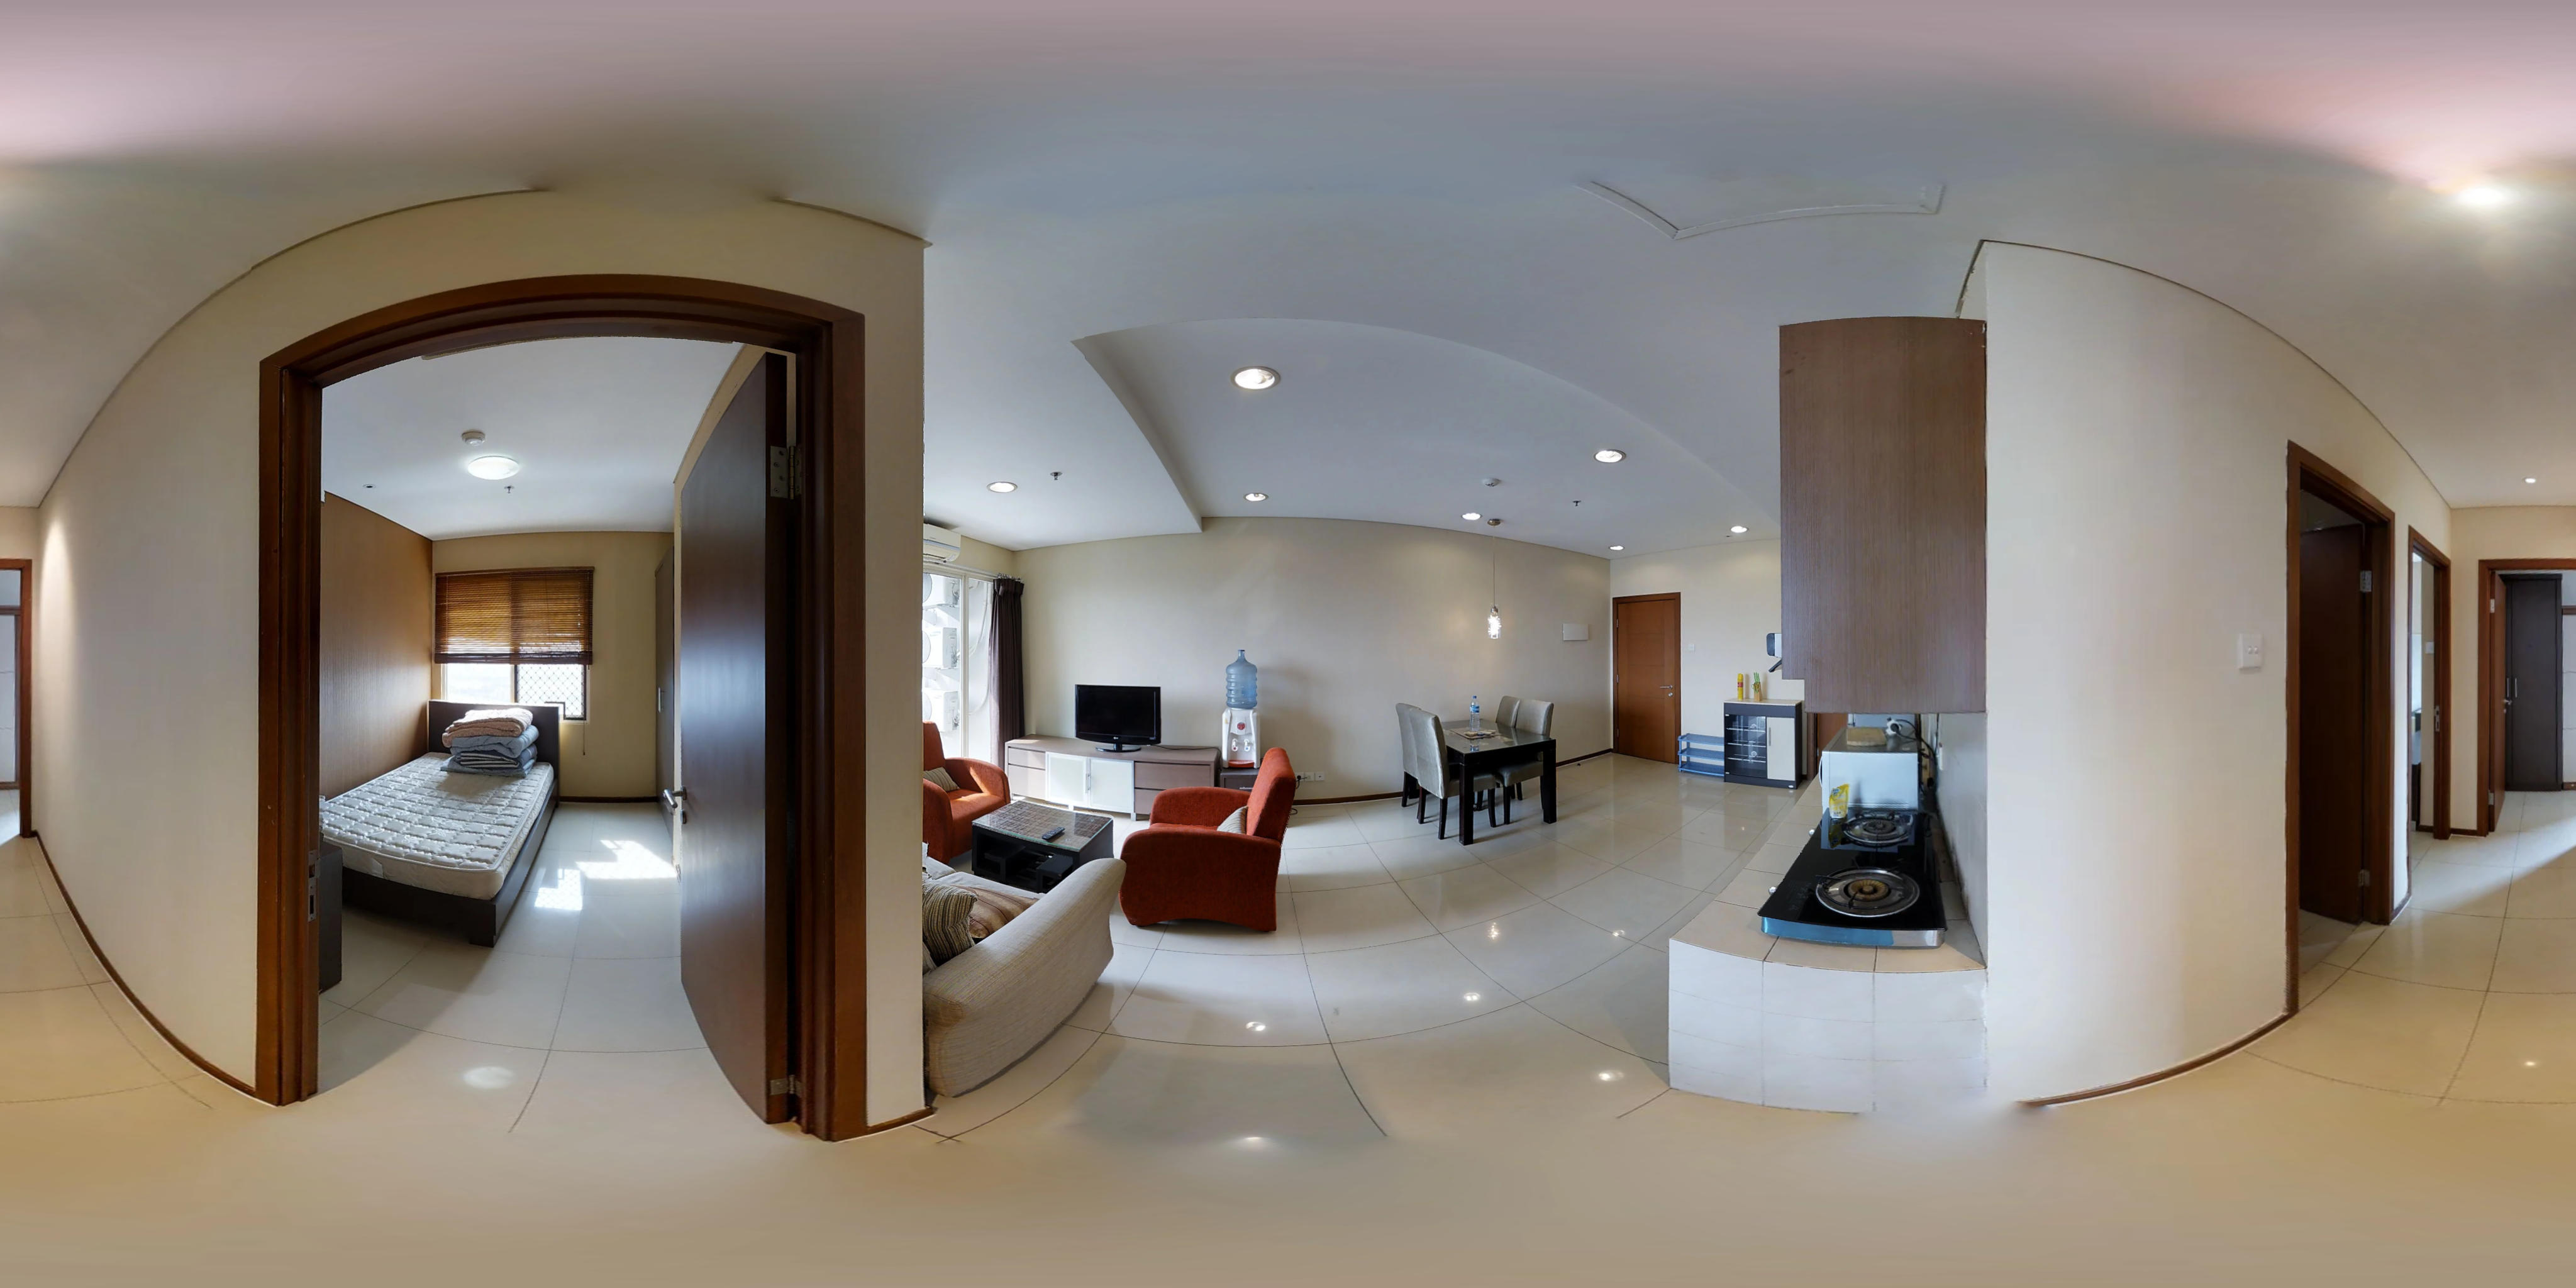 for rent Thamrin Residences - NIce unit with spacious 3 bedroom space